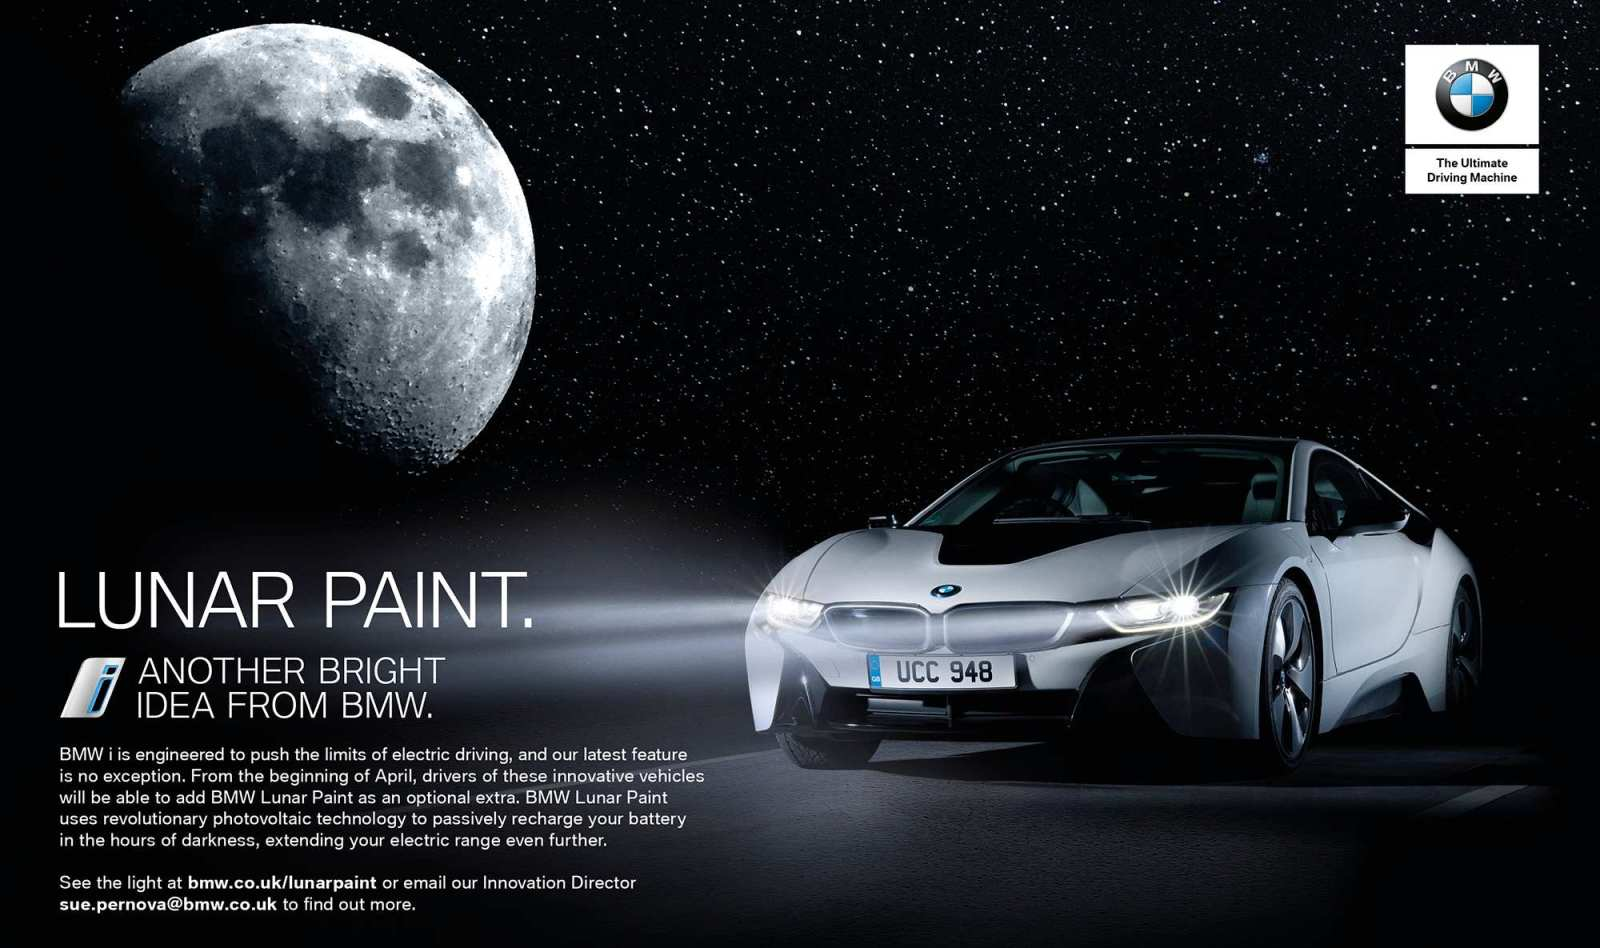 BMW Lunar Paint, the next step in electric driving | Latest Technology